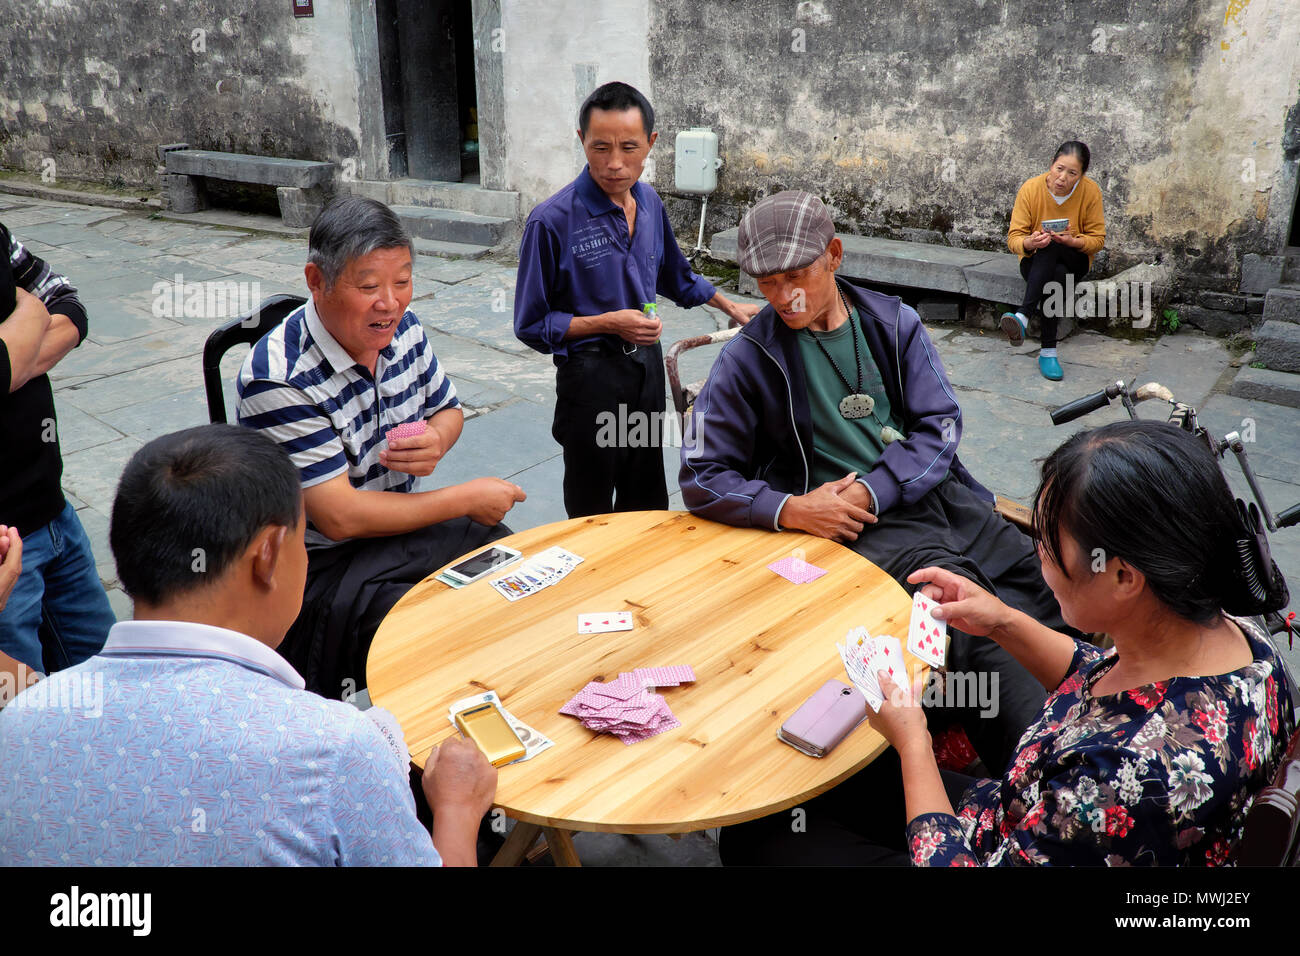 Game of cards on a brand new table, Xidi Ancient Village, Anhui Province, China - Stock Image